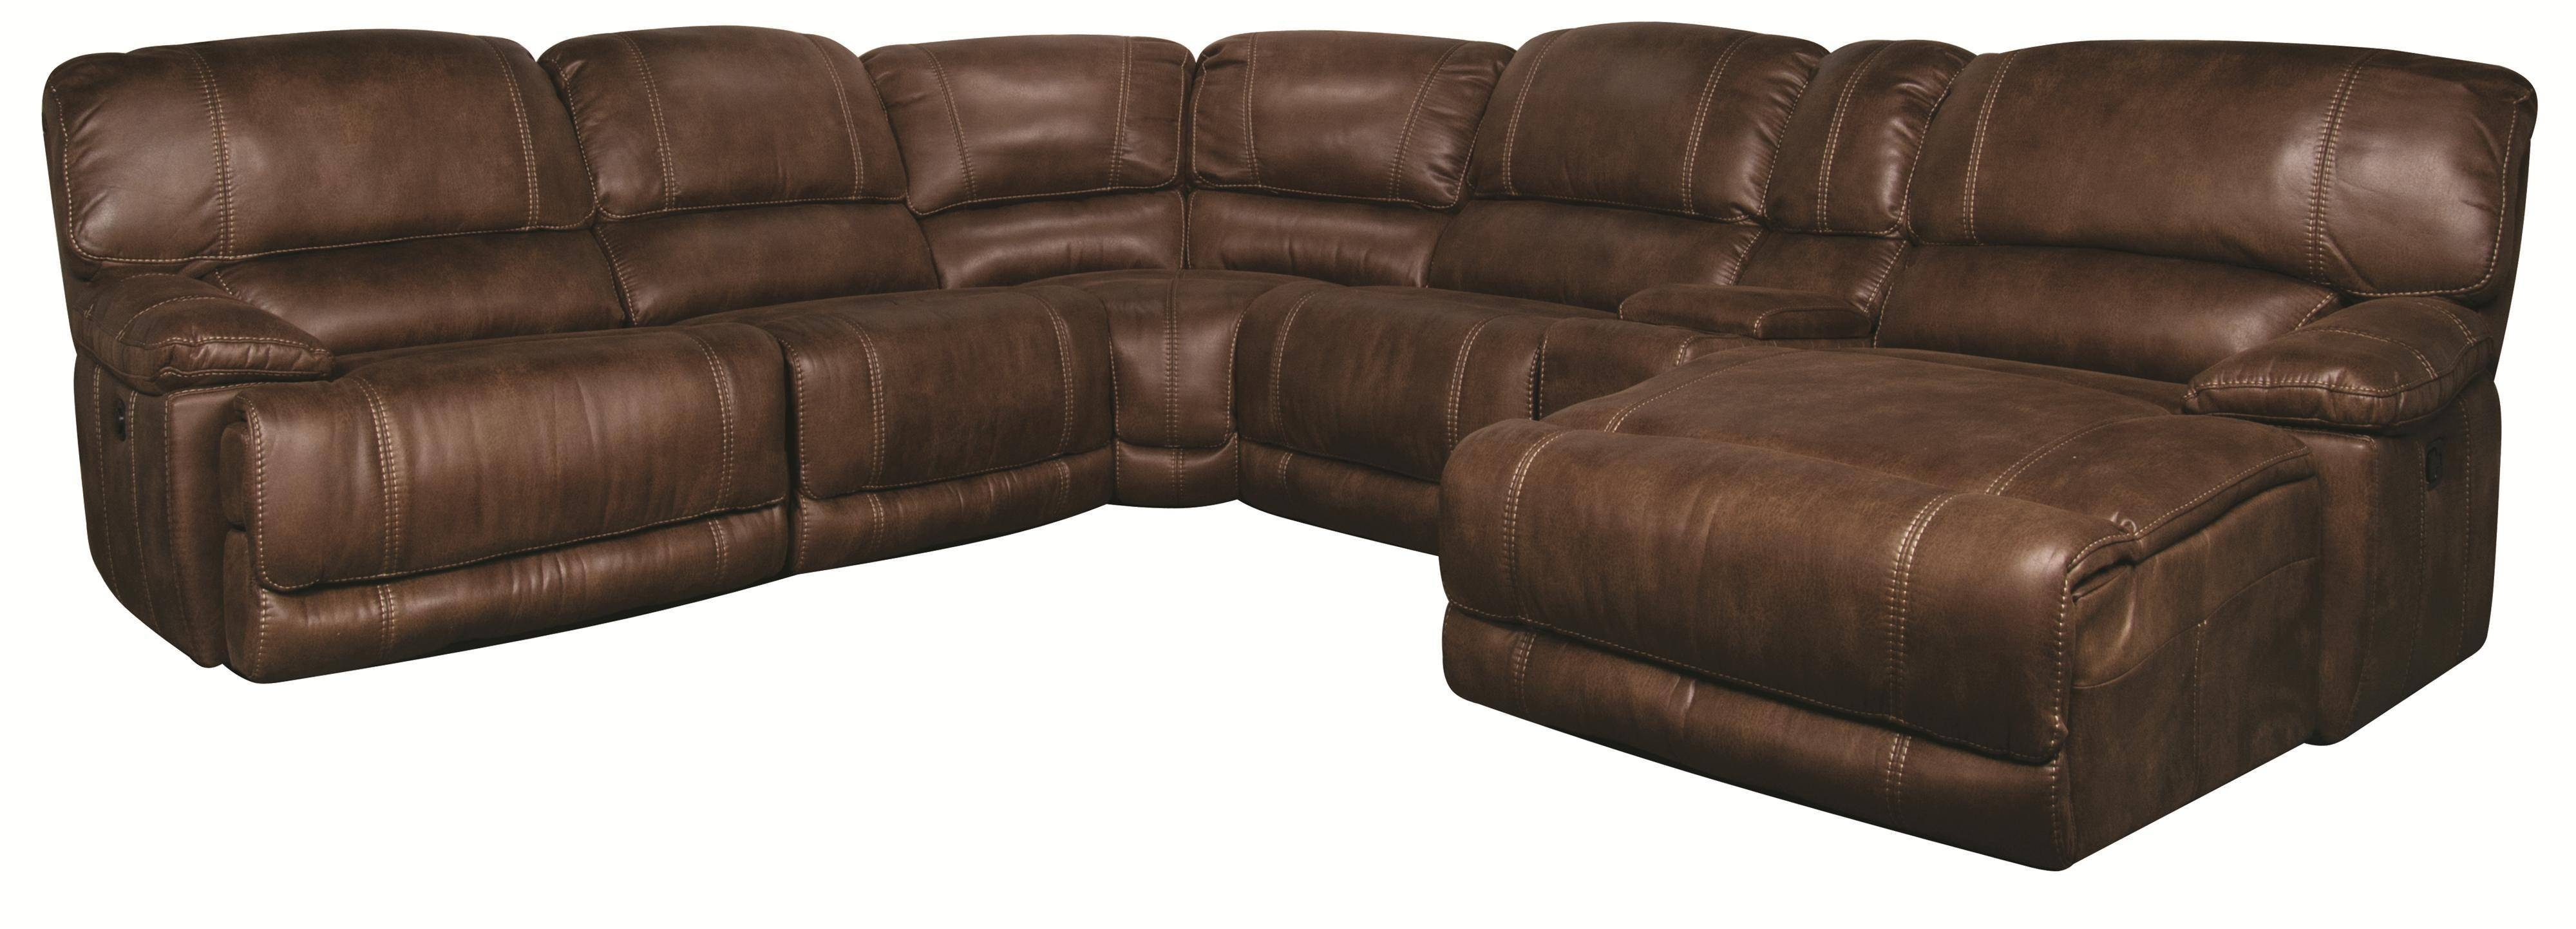 Sandra 6-Piece Power Sectional - Morris Home - Reclining Sectional for 6 Piece Sectional Sofas Couches (Image 12 of 15)